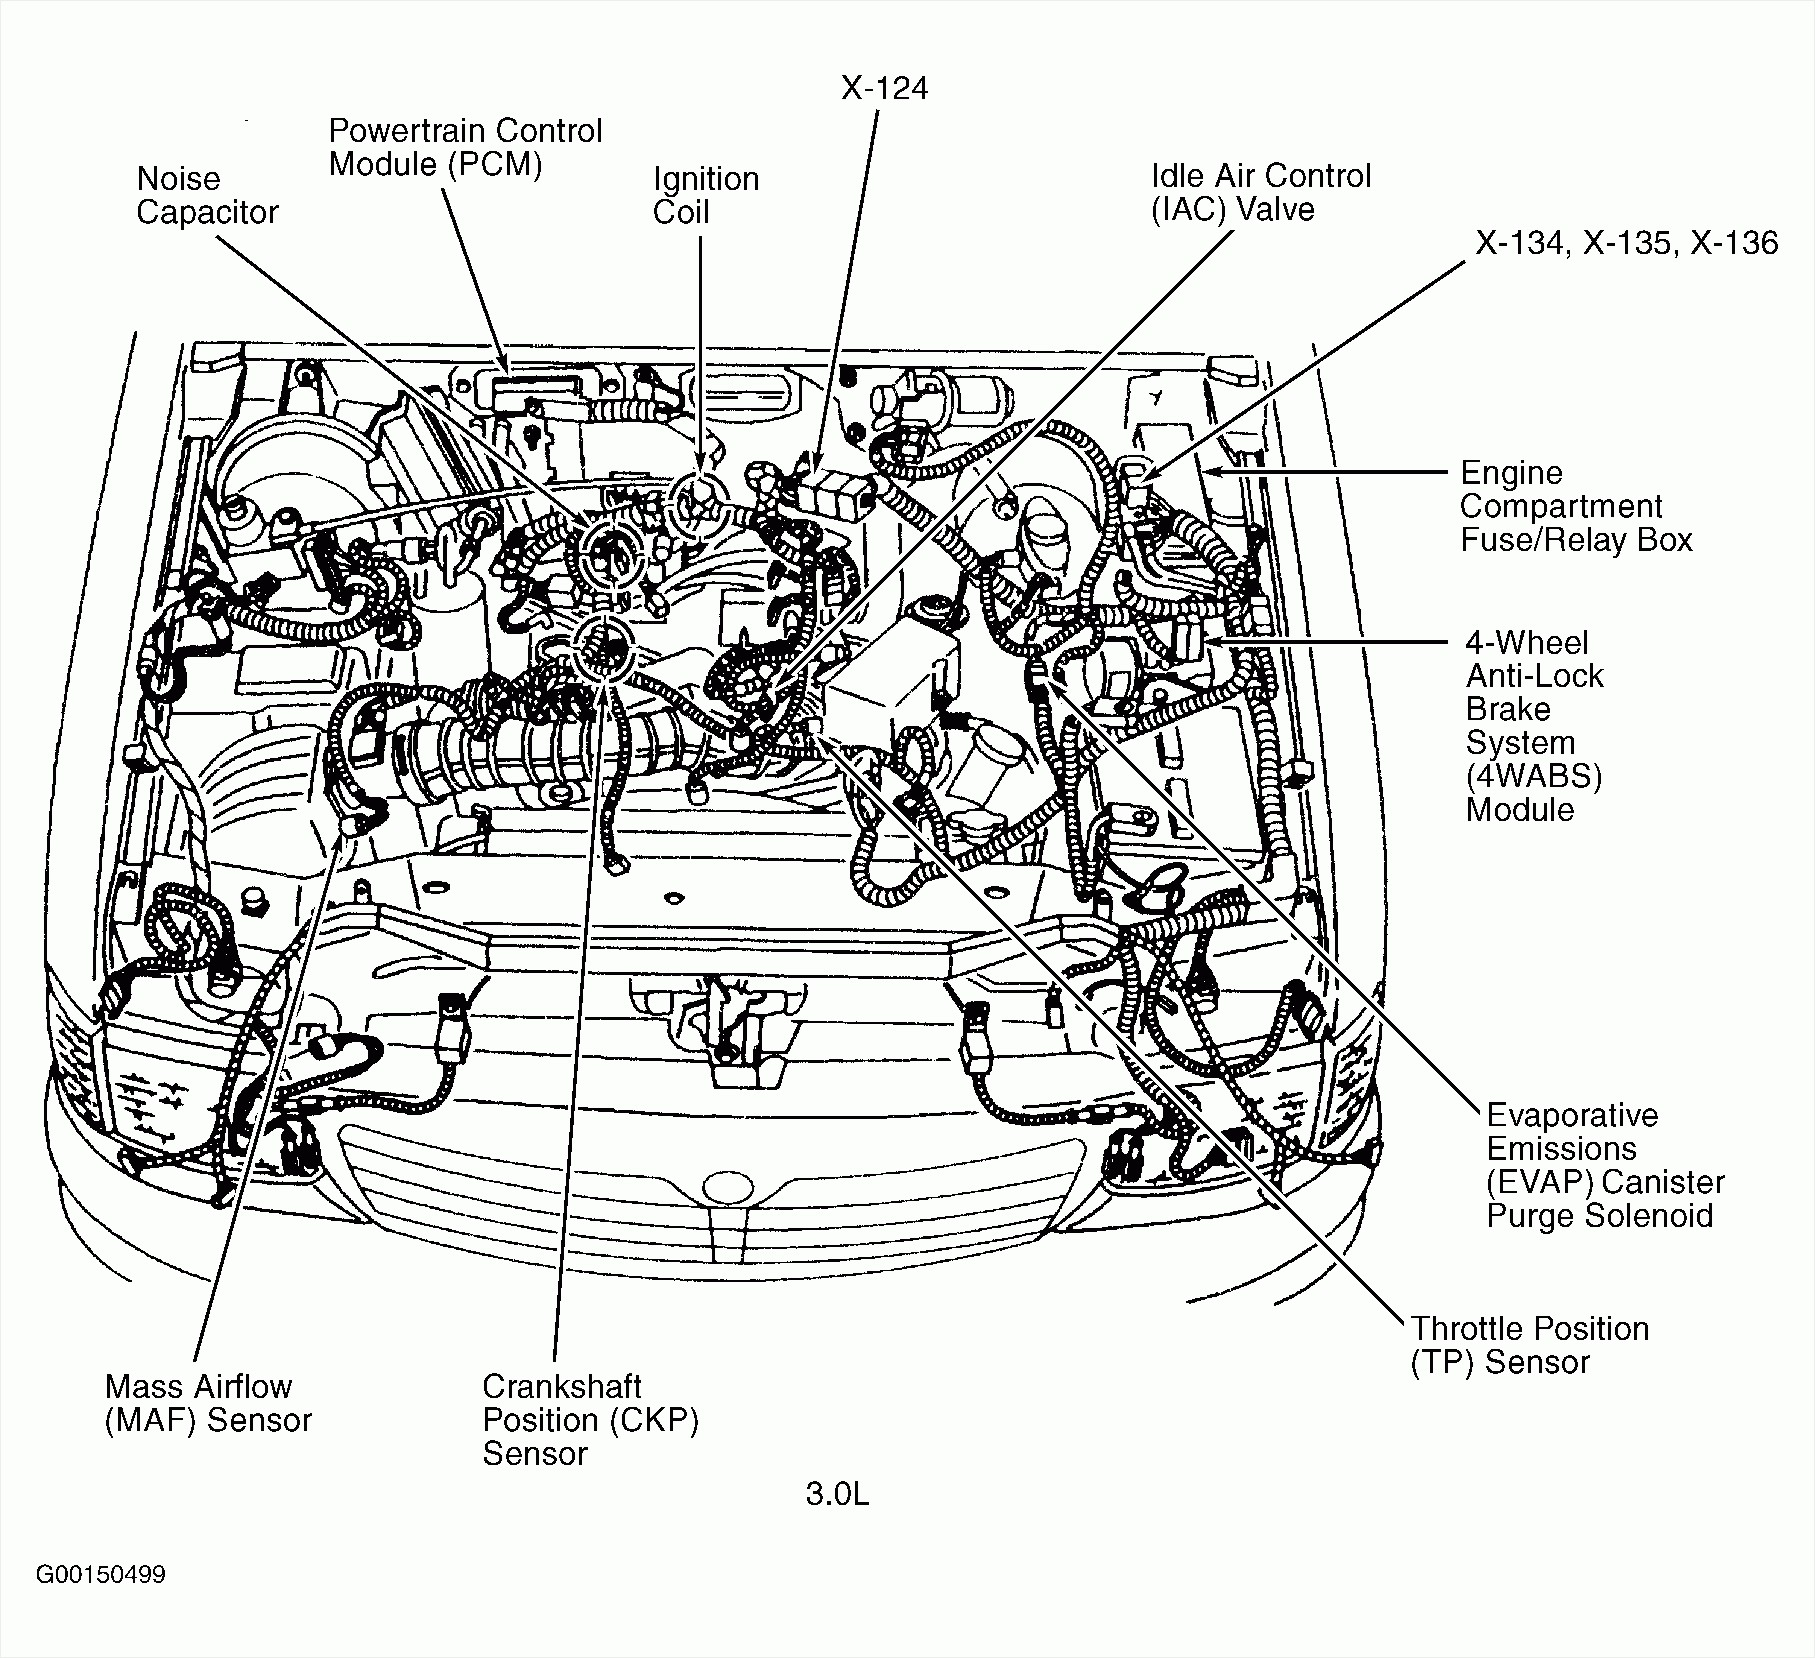 hight resolution of 2003 vw jetta emission diagram wiring data u2022 rh 144 202 108 125 1999 vw jetta